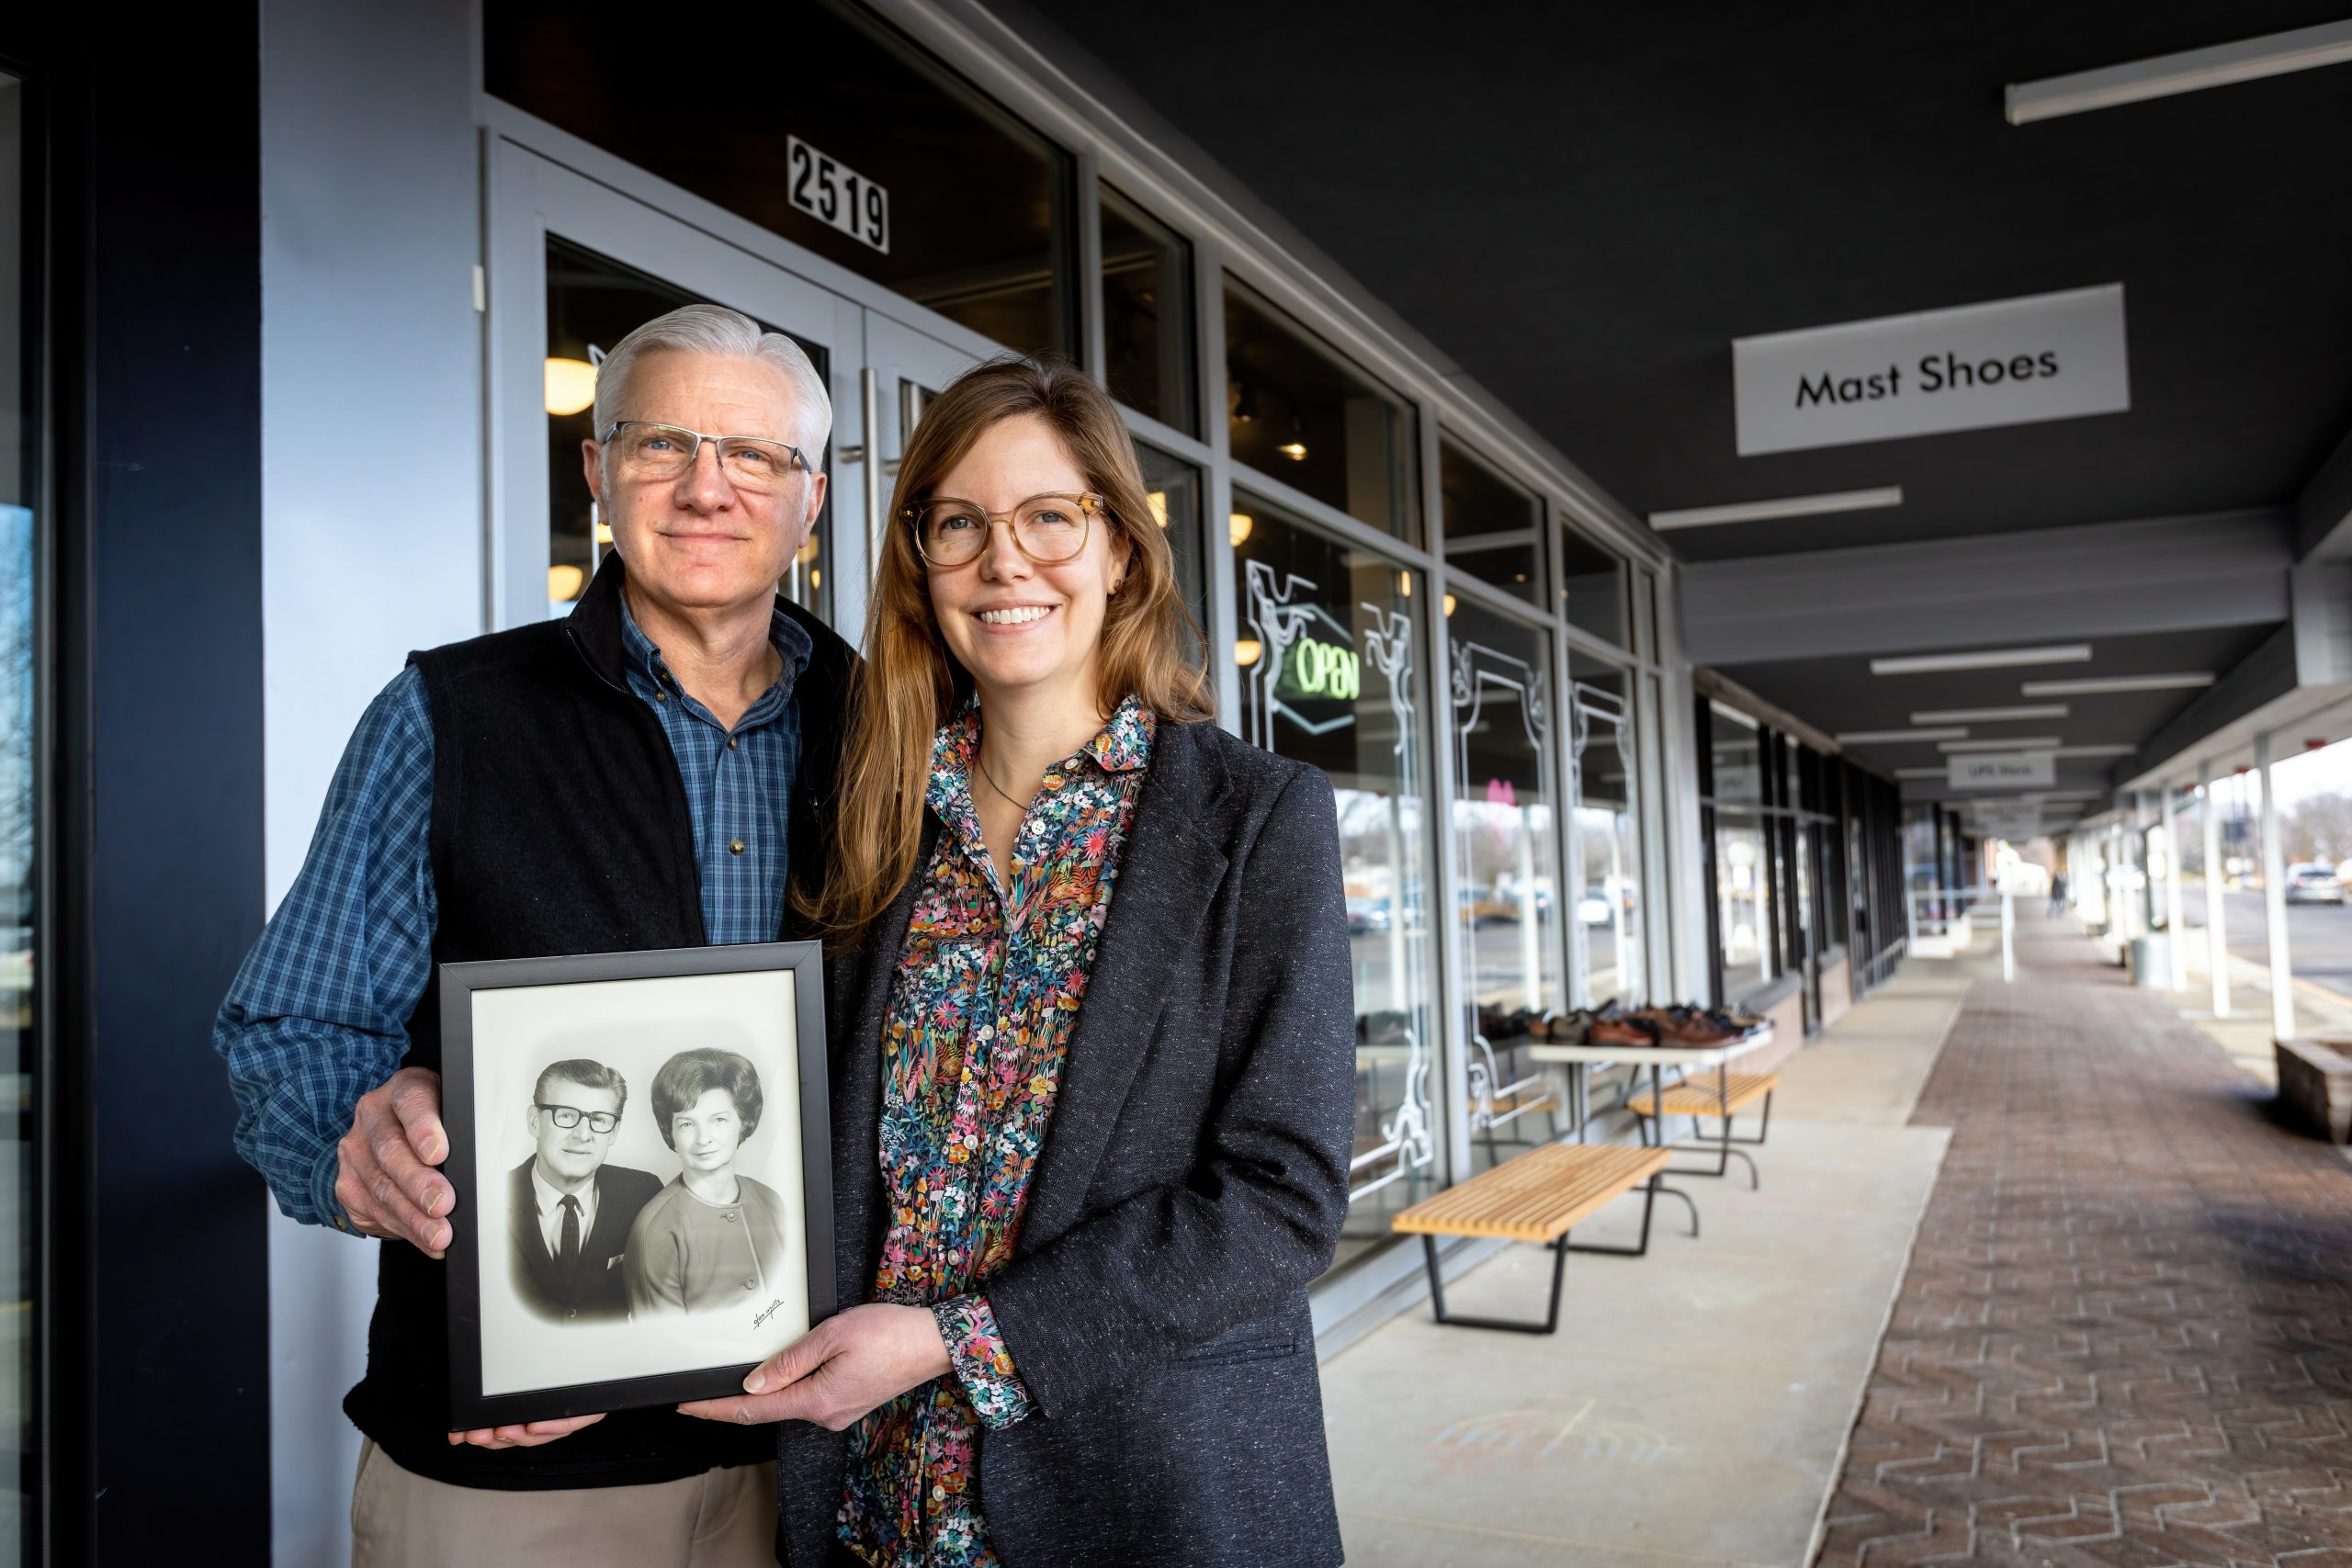 Molly Mast-Koss And Her Father Greg Mast At Their Mast Shoe Store In Ann Arbor. Gary's Father Walter And Mother Helen Mast Founded The Store In 1942.